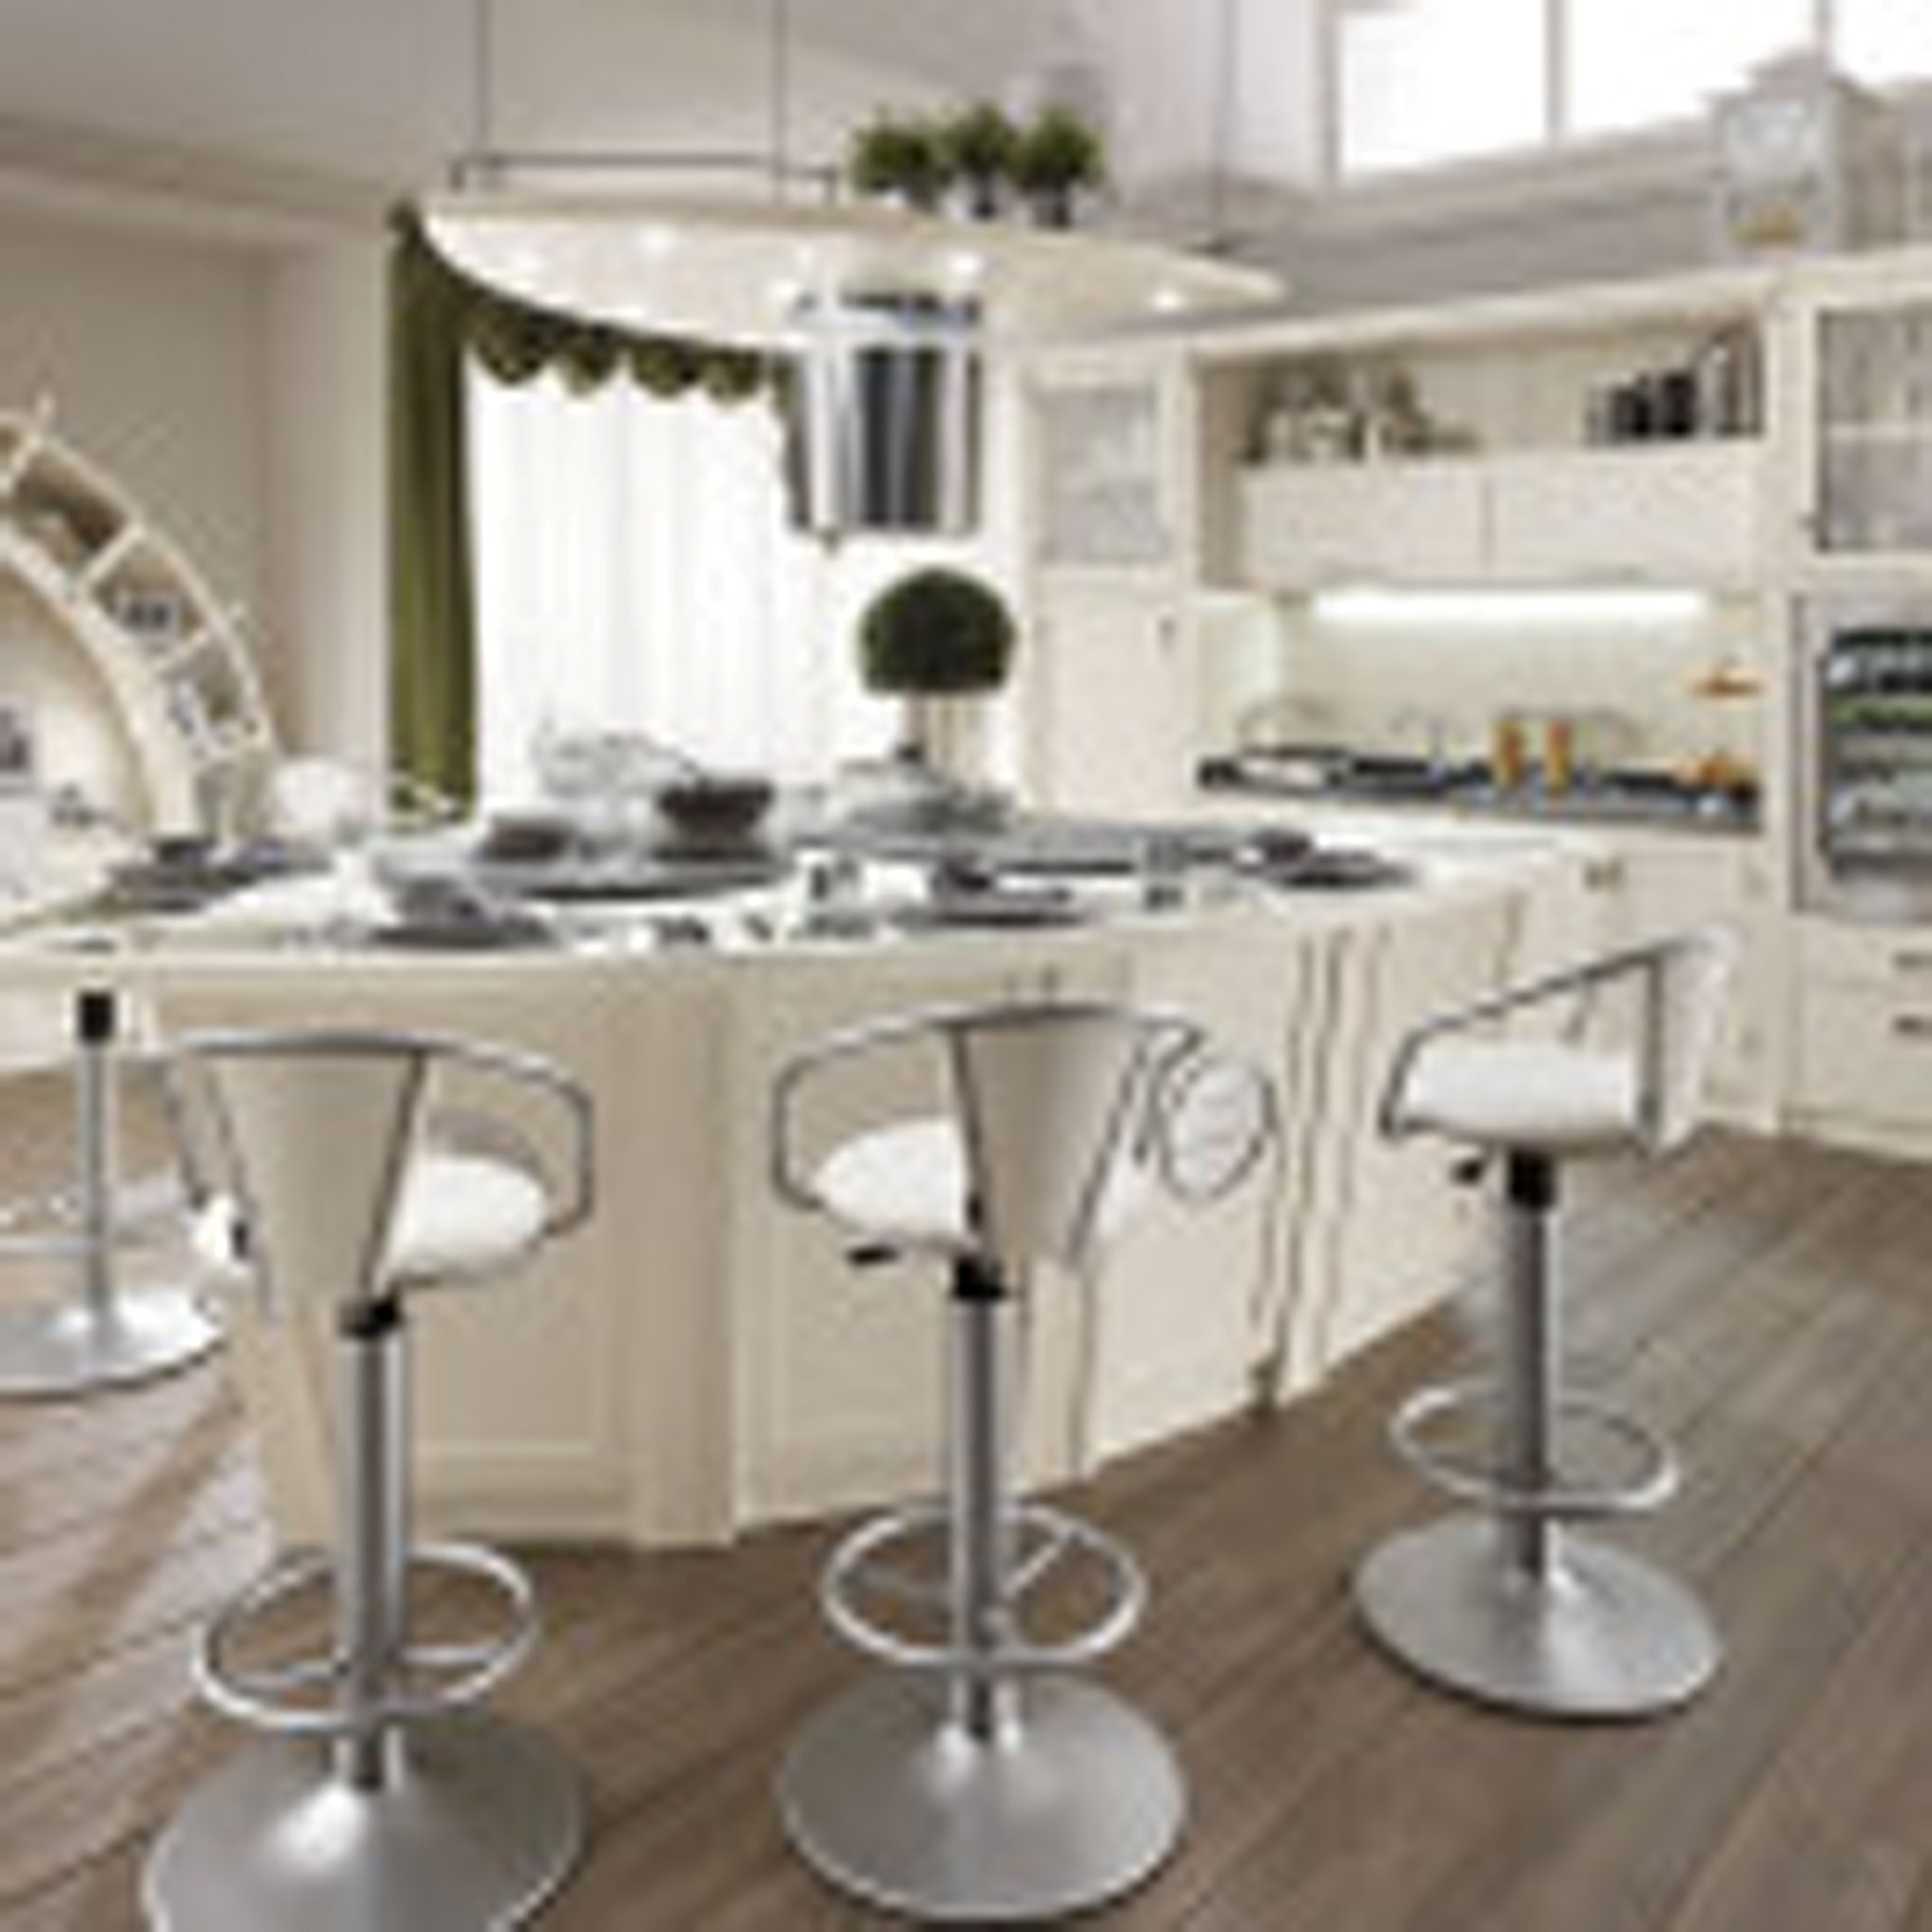 stainless steel stools kitchen american standard faucet replacement parts contemporary interior remodel ideas 13